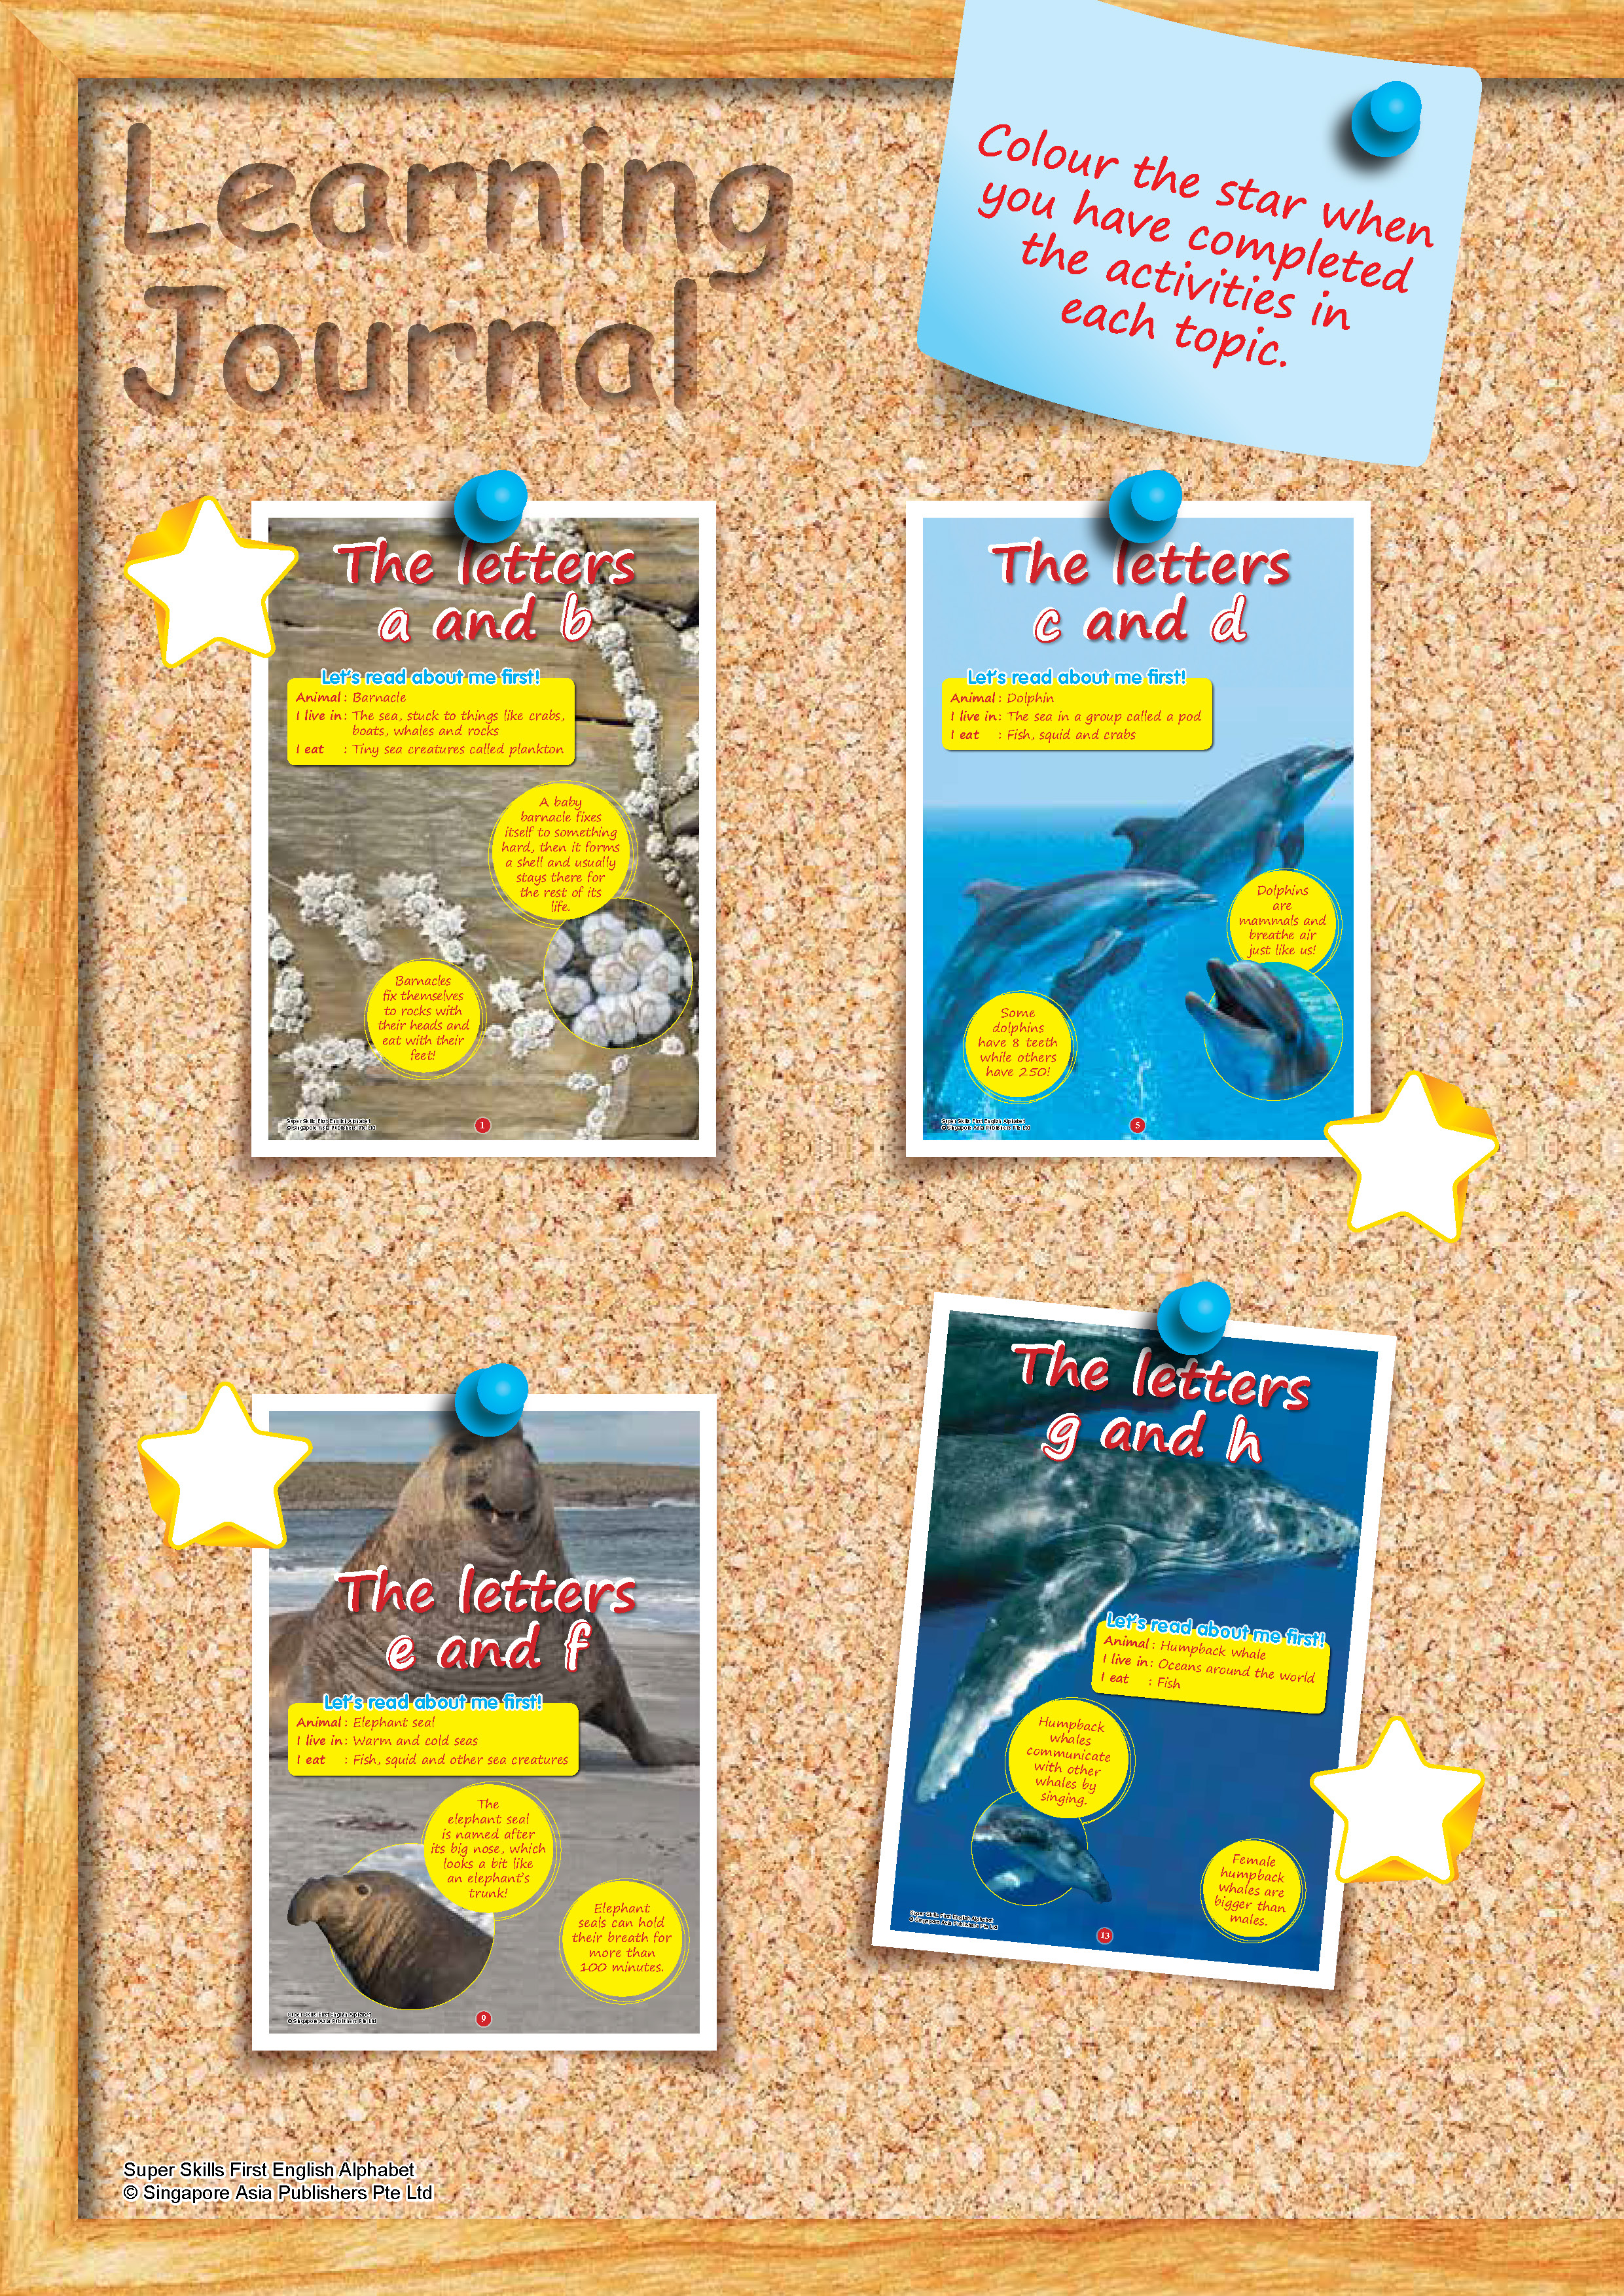 3284517_02 Learning Journal-1